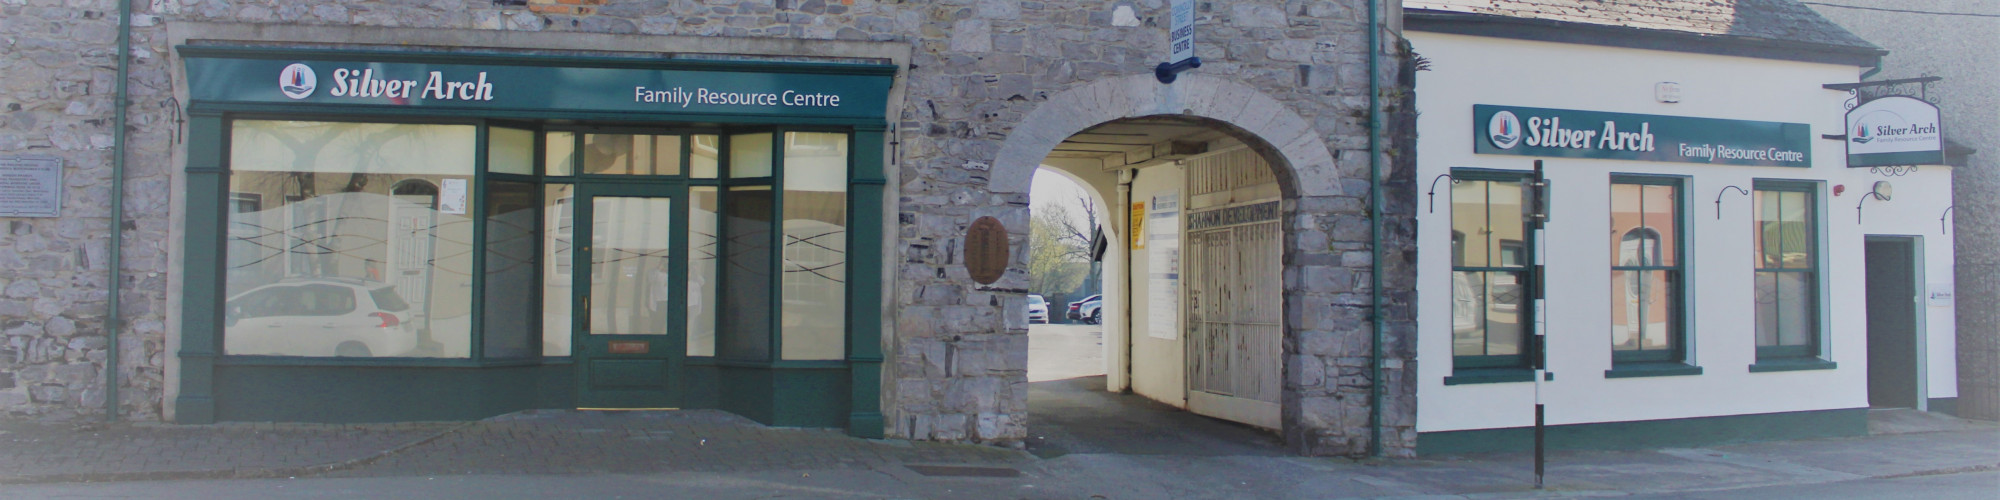 Silver Arch Family Resource Centre